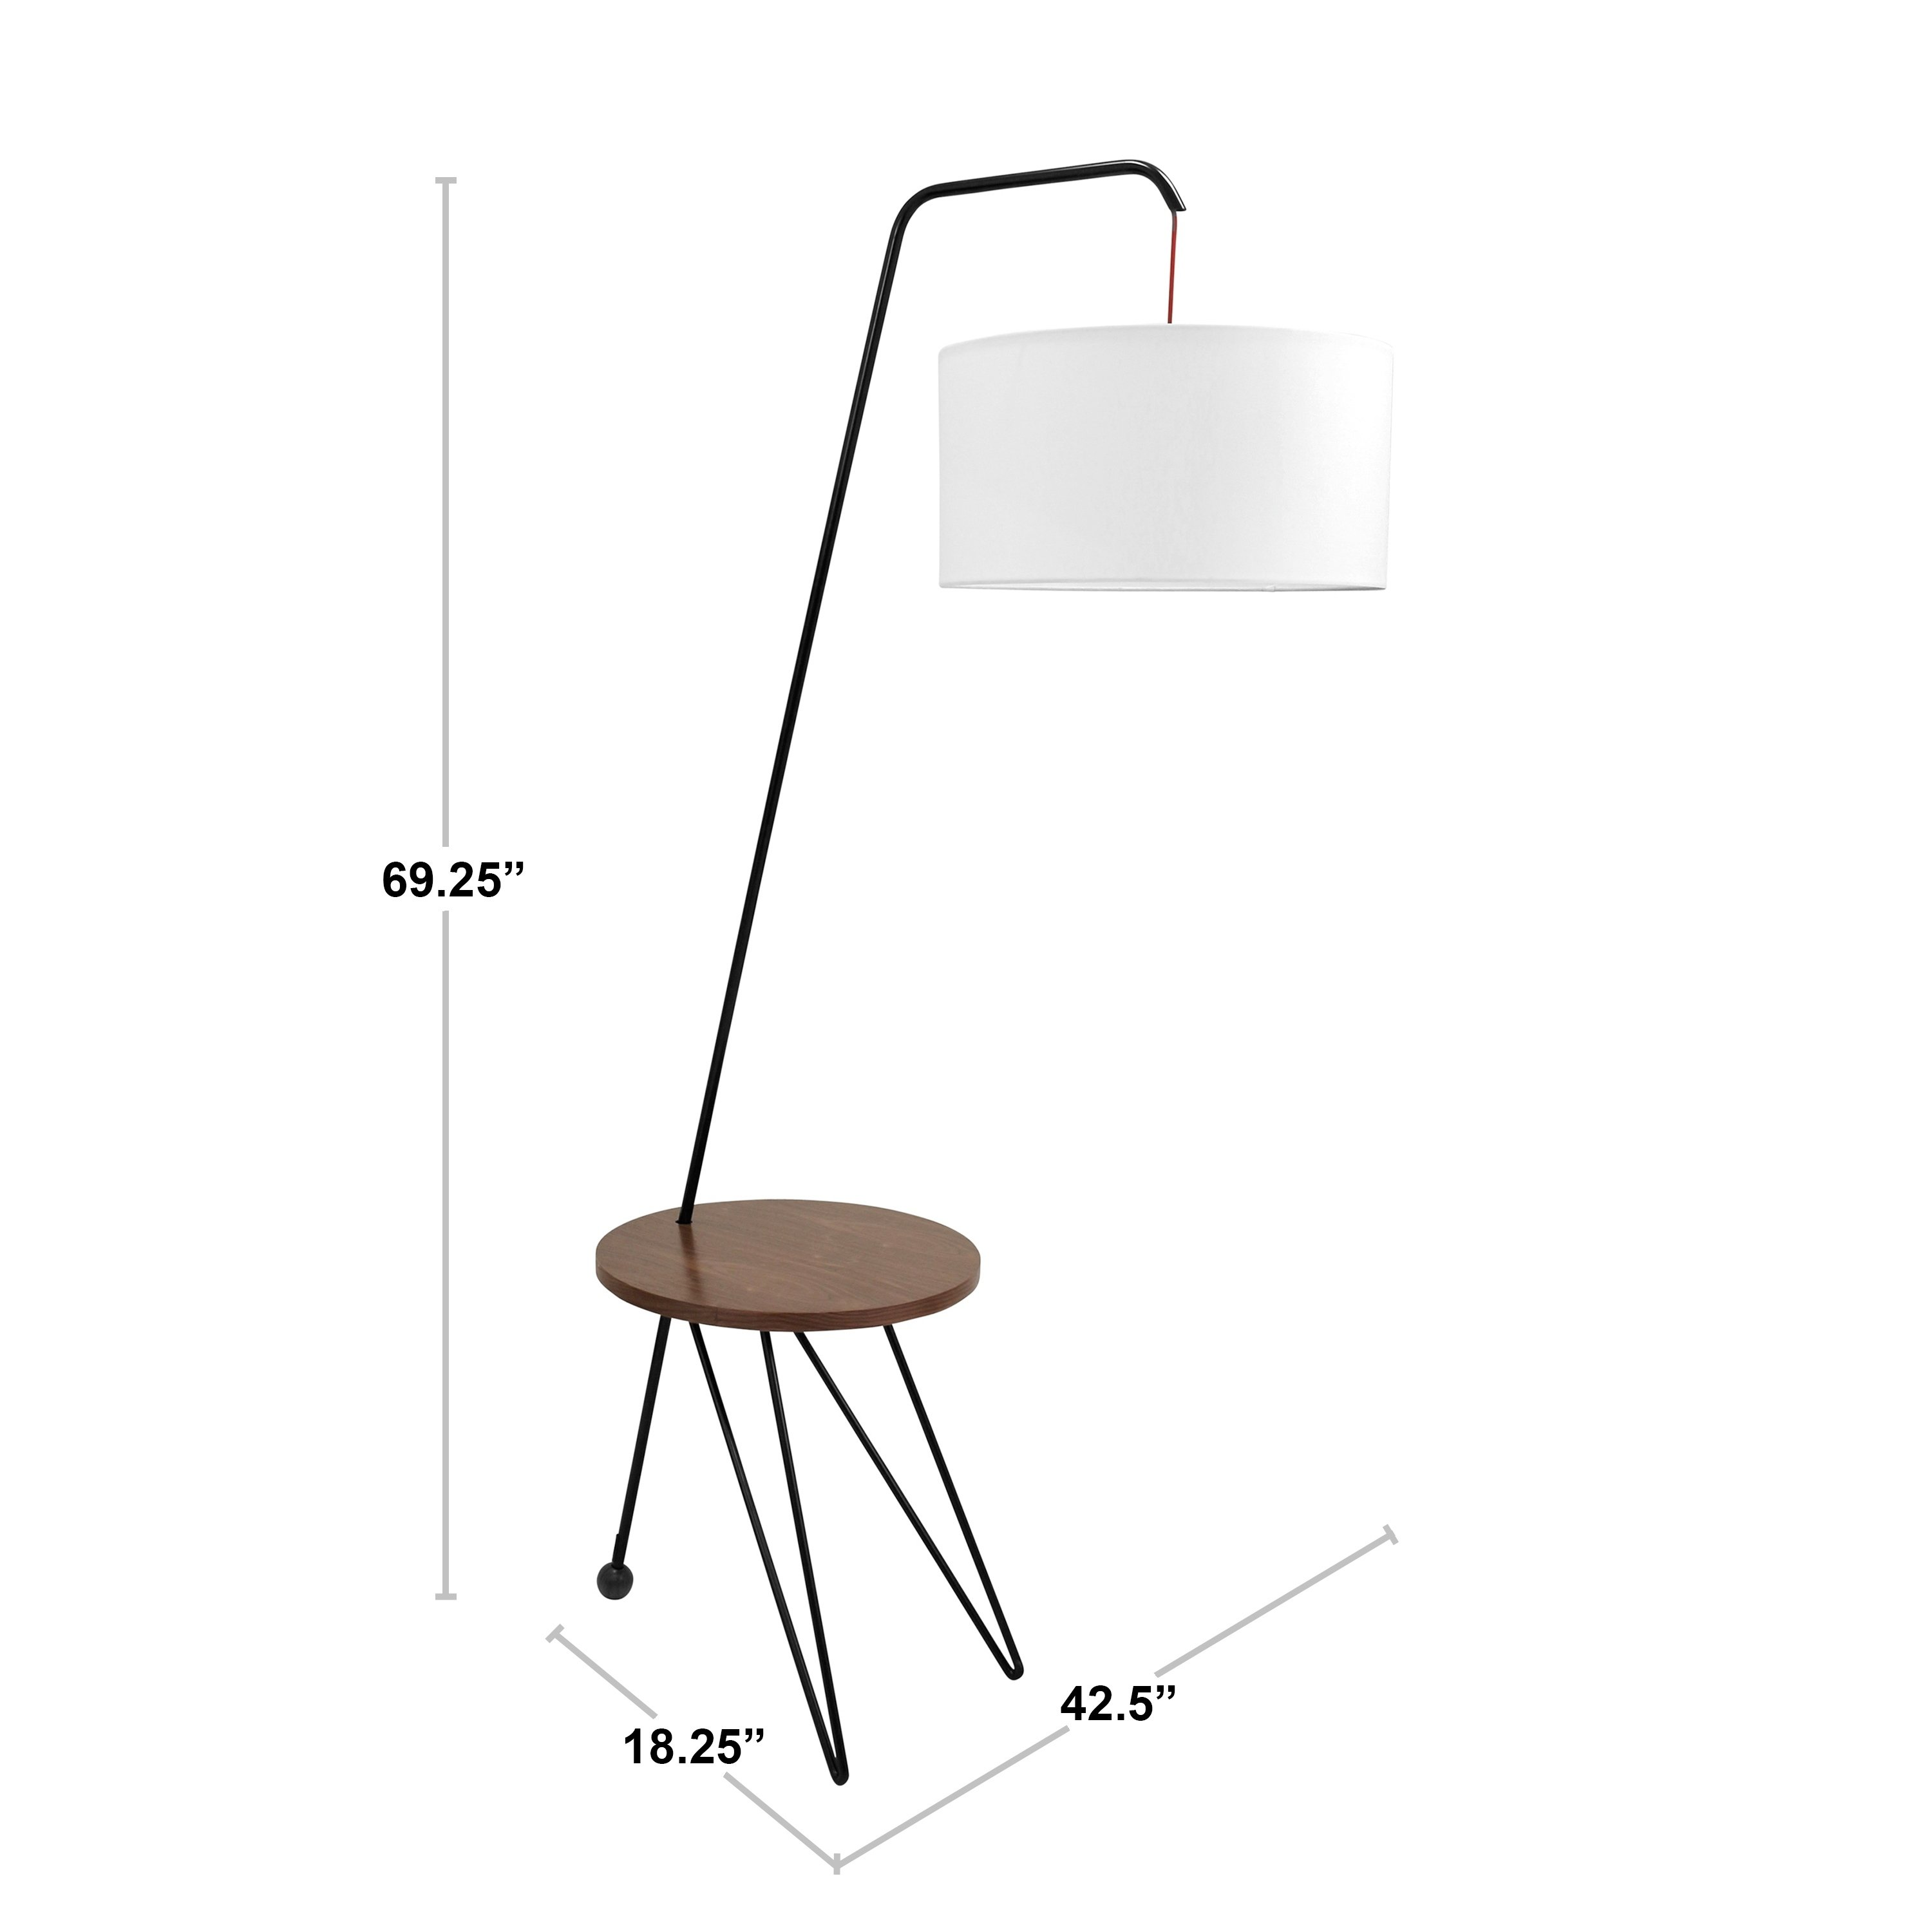 stork mid century modern floor lamp with walnut wood accent table free shipping today metal drum rustic end pottery barn replacement parts outdoor patio bench entryway rug